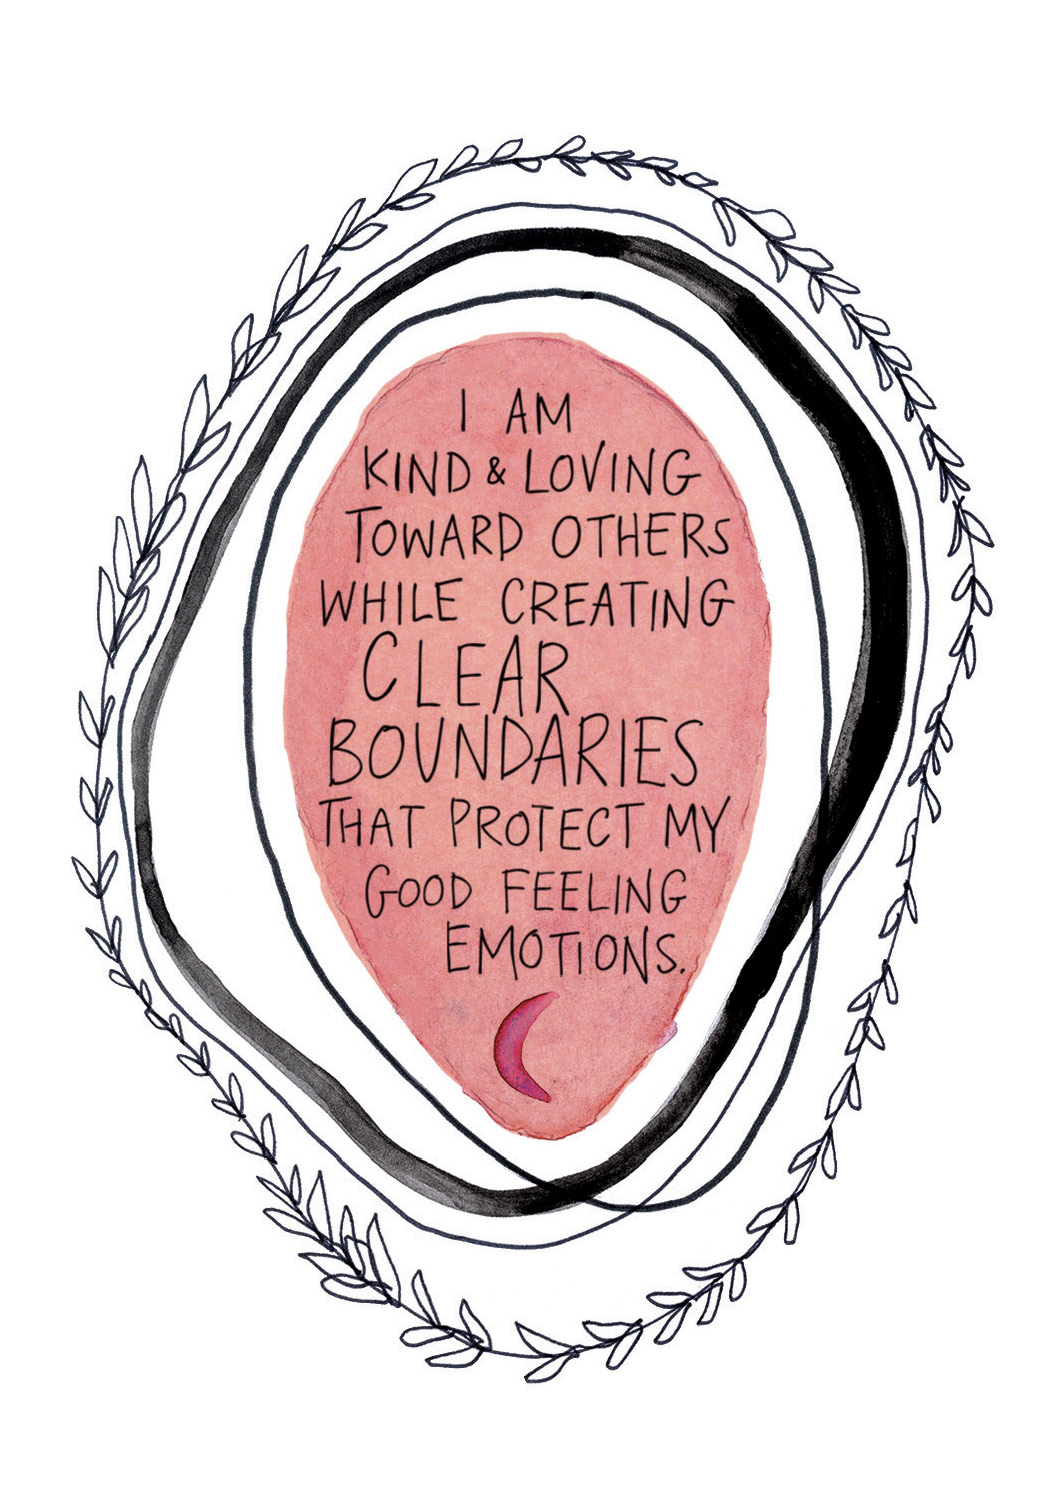 I am kind & loving toward others while creating clear boundaries that protect my good-feeling emotions